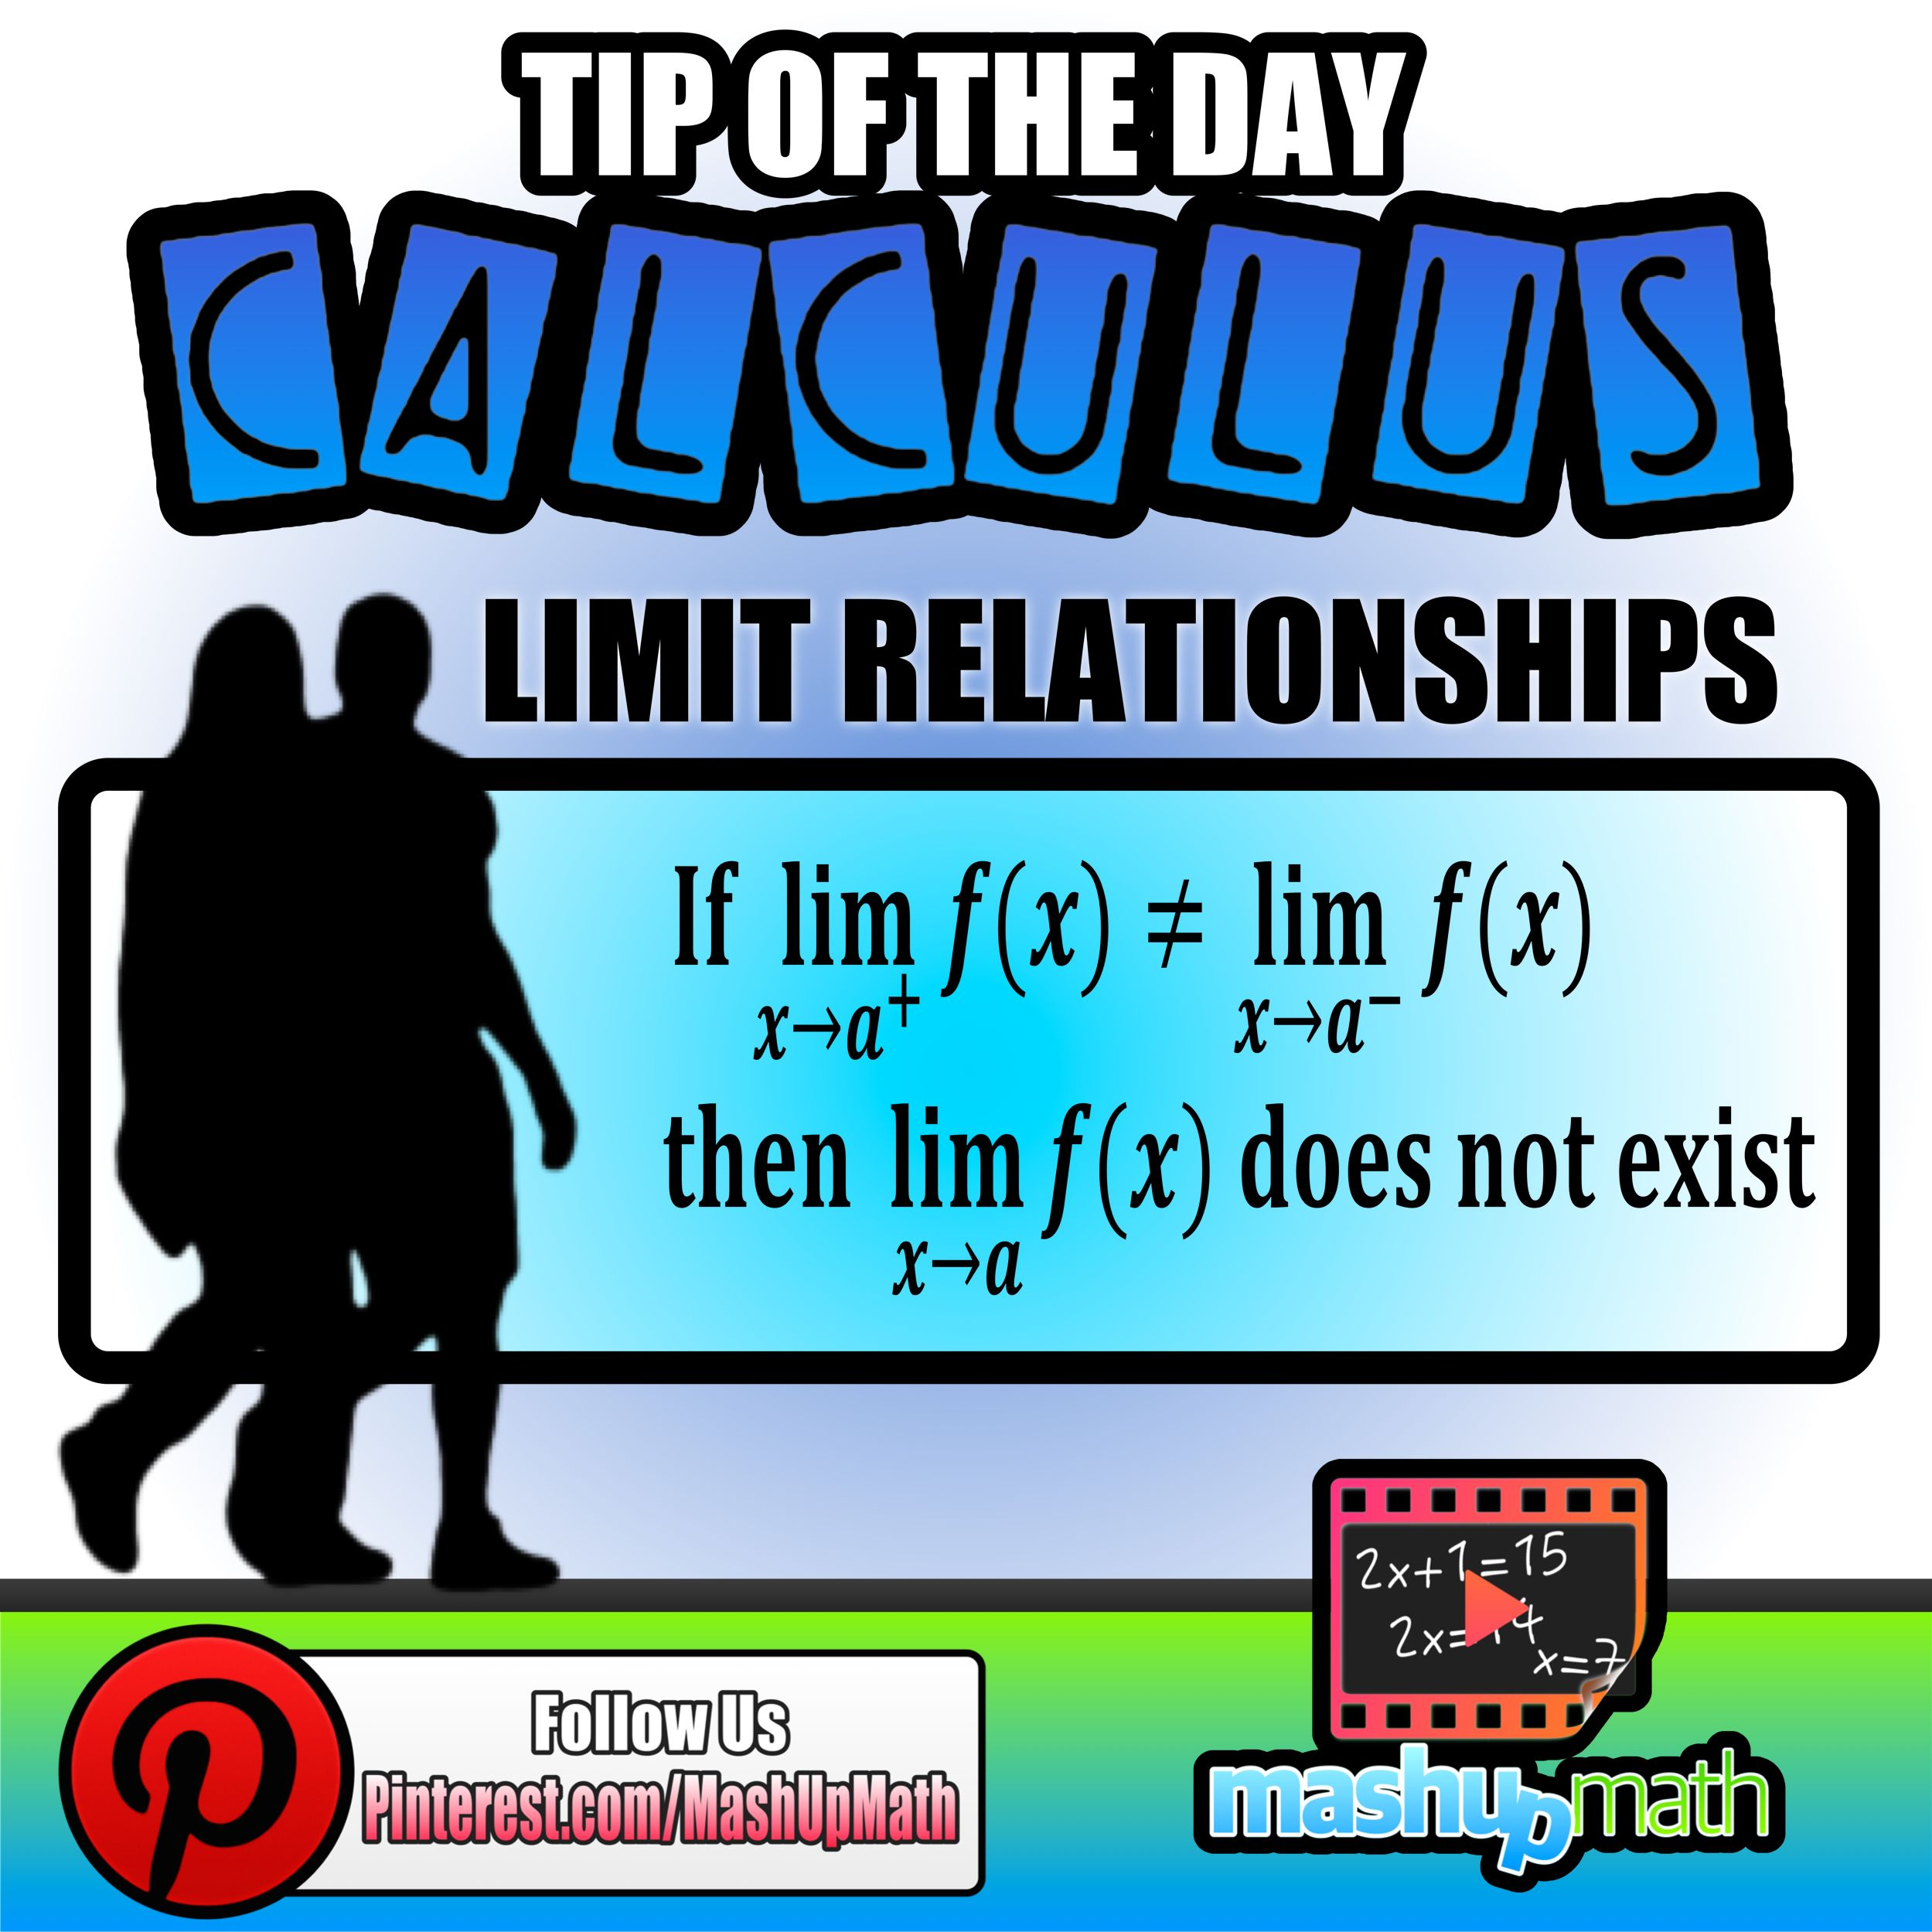 Follow Mashupmath On Instagram For Daily Math Tips